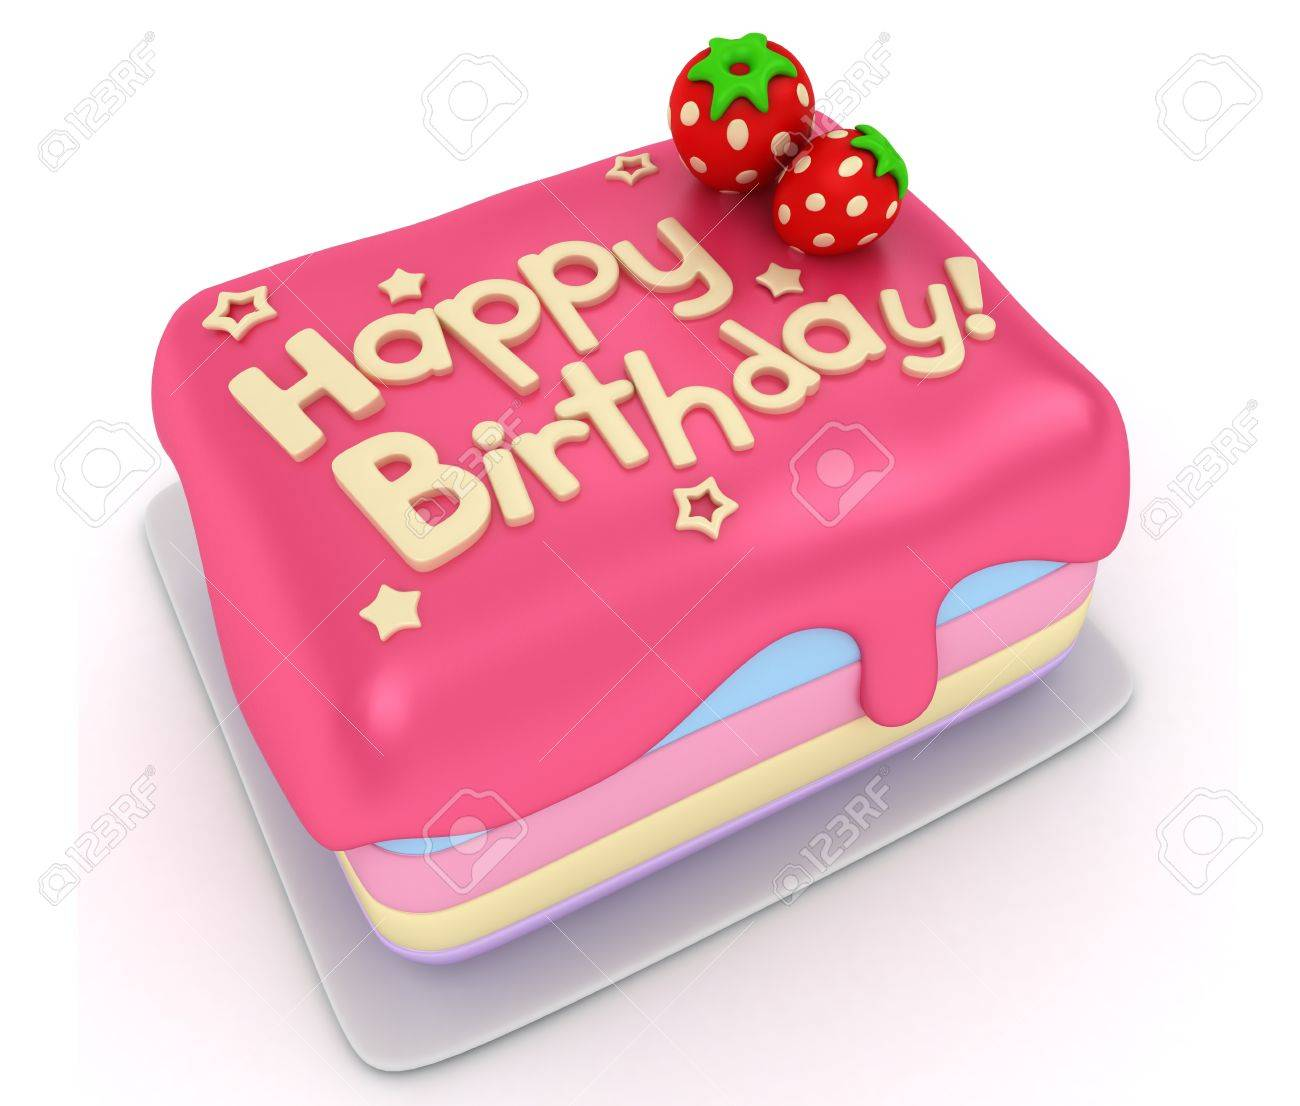 3D Illustration Of A Birthday Cake Stock Photo Picture And Royalty